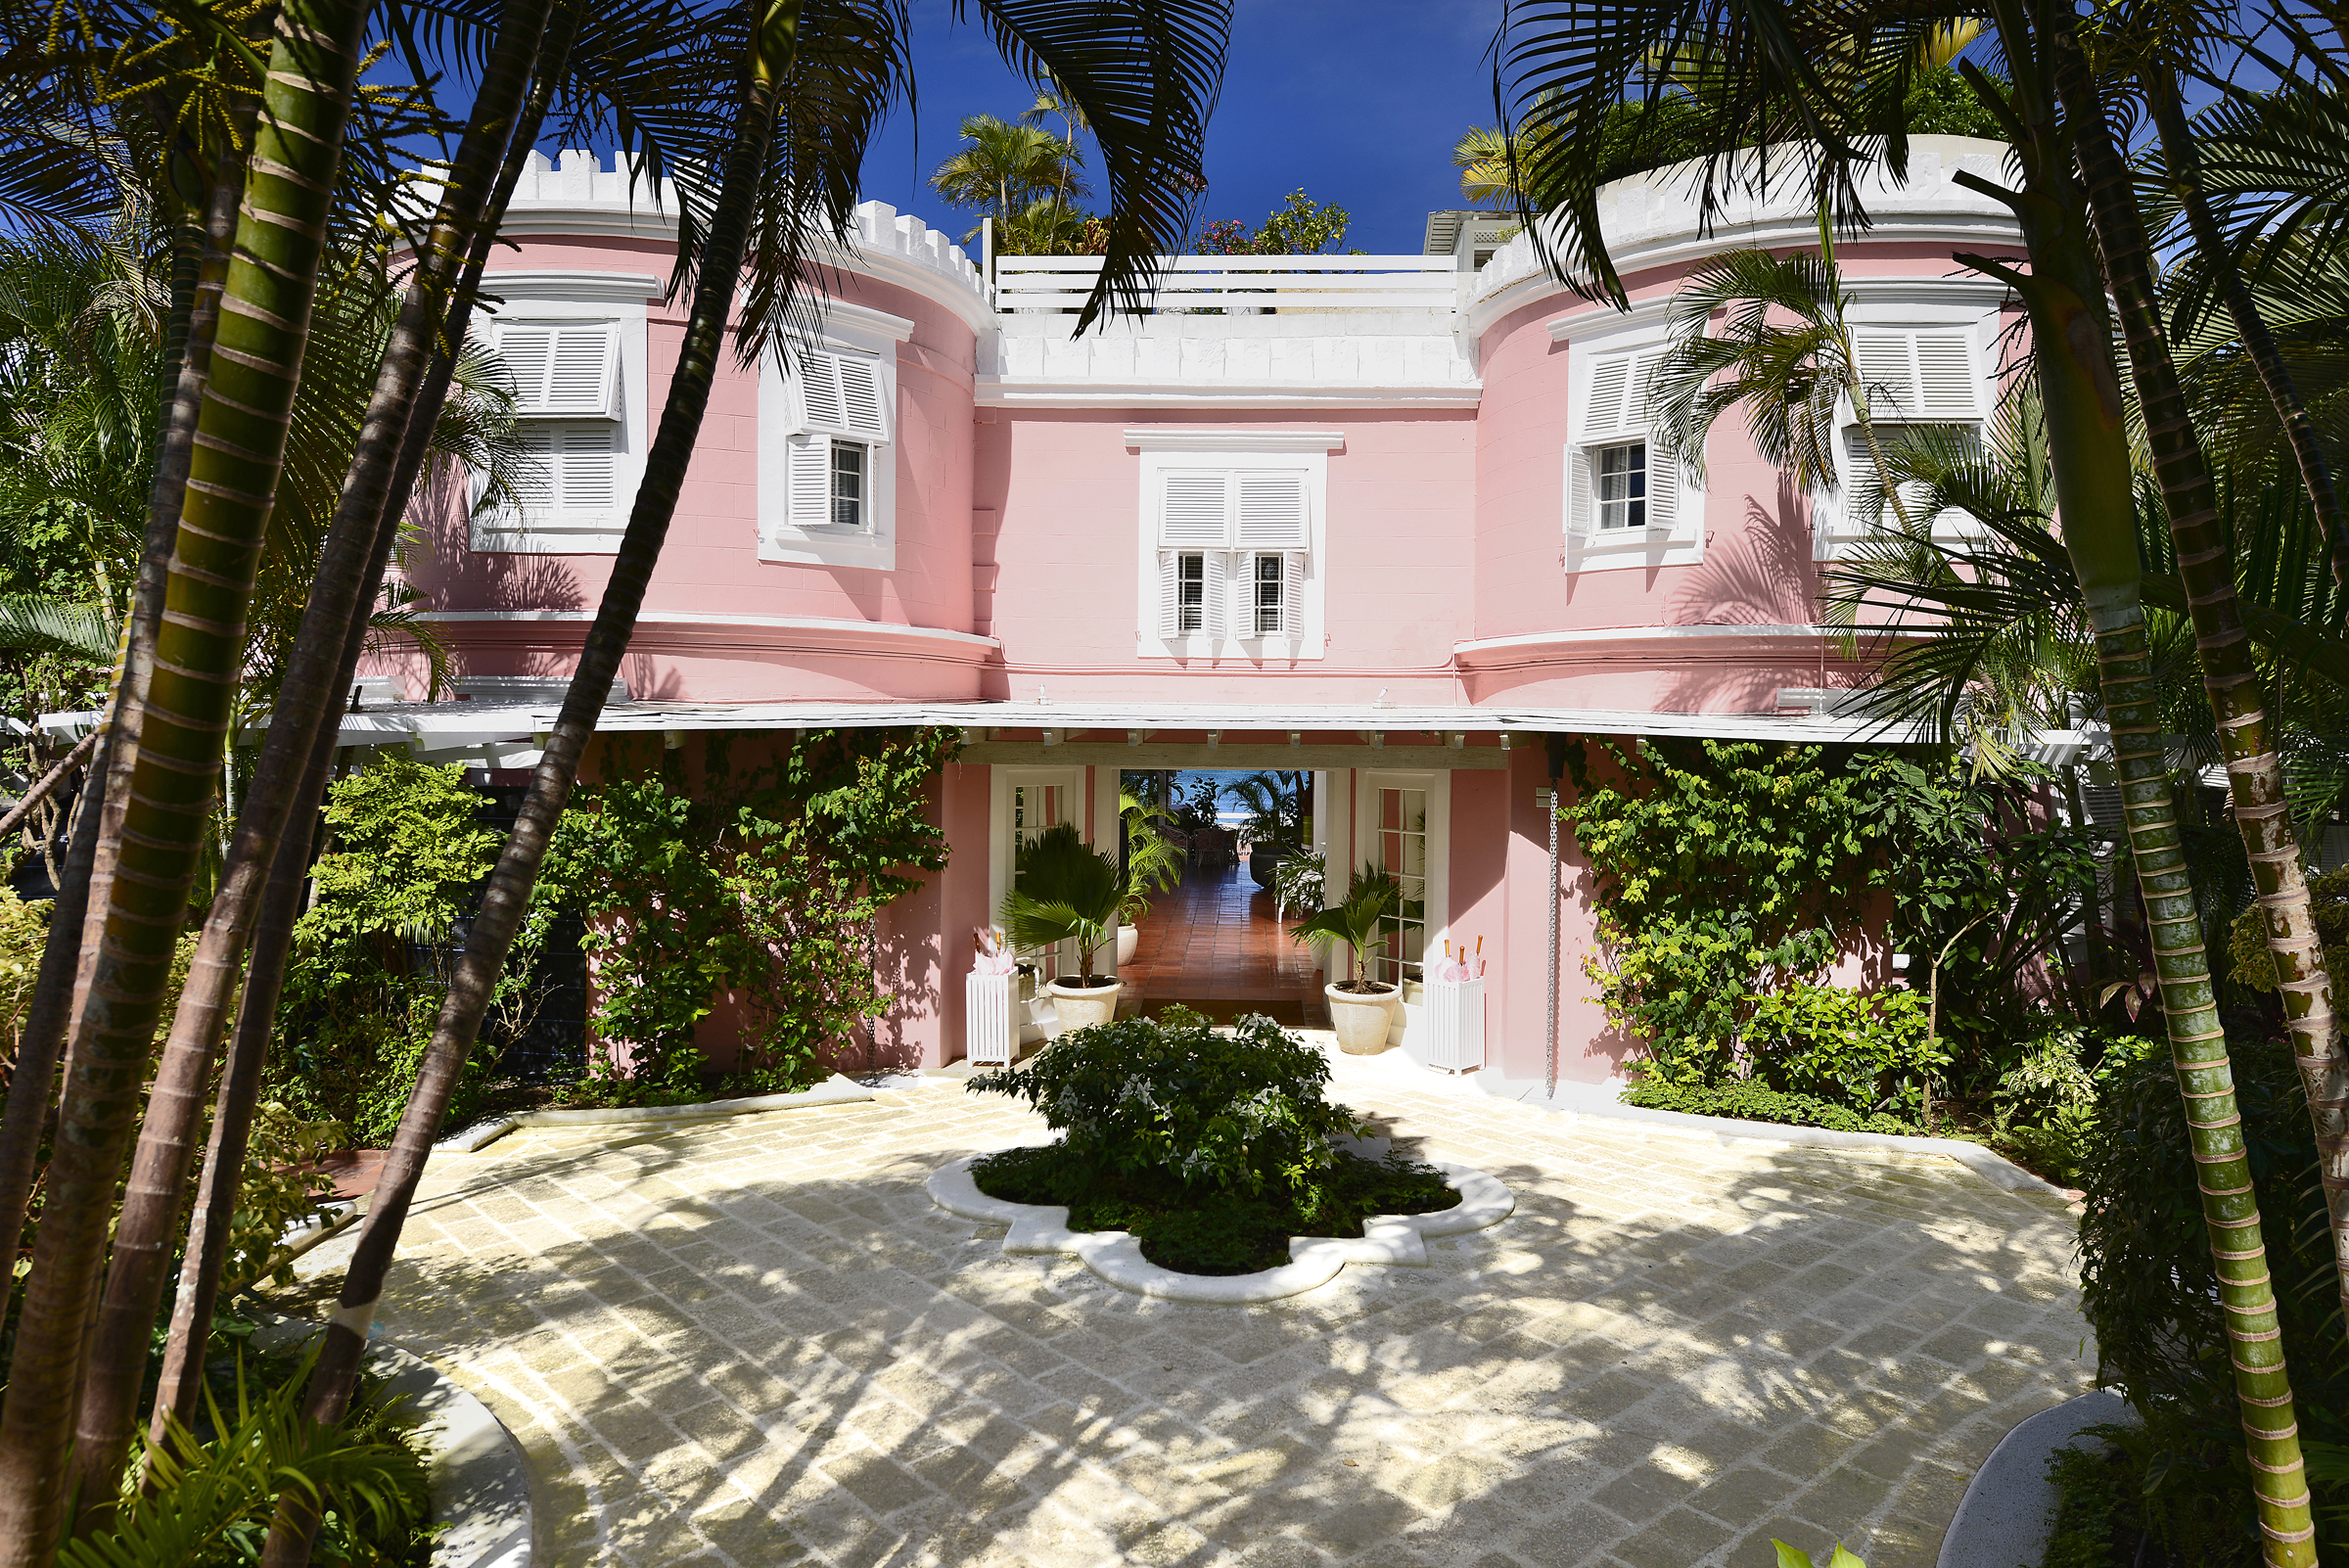 Cobblers Cove Great House.jpg